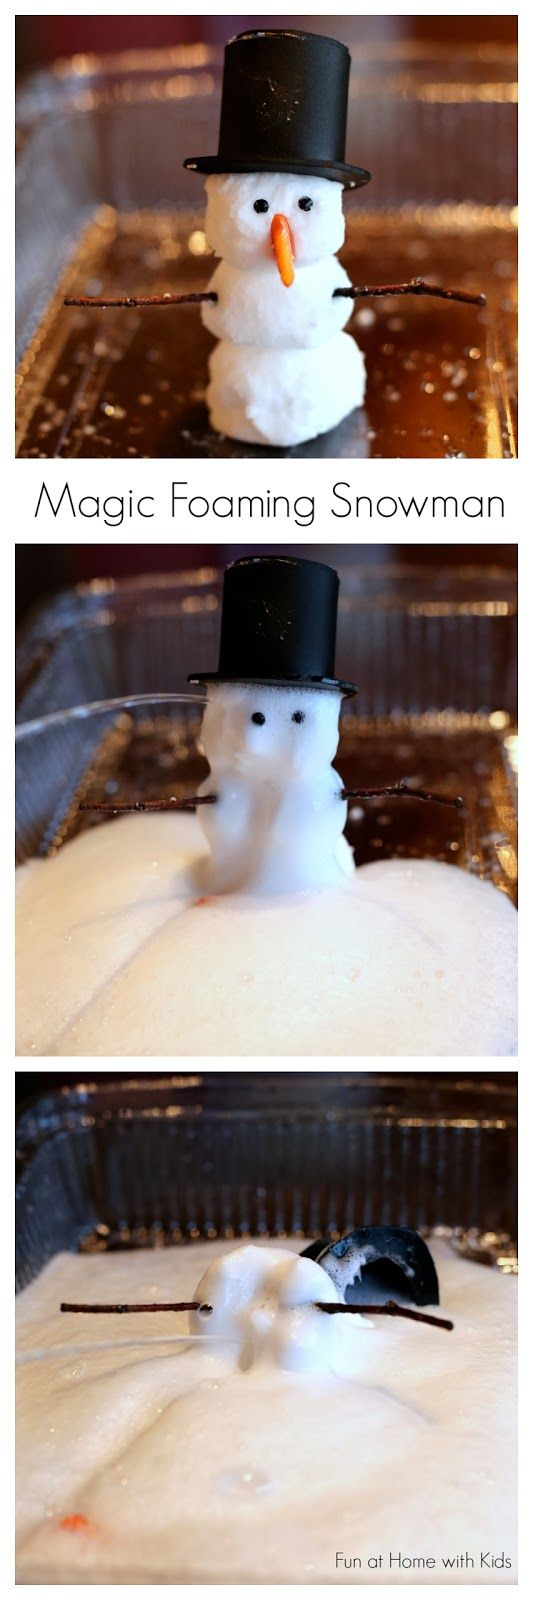 """{New Recipe} Foaming Dough you can use to make Magic Foaming Snowmen that """"melt"""" into an icy puddle of frothy foam!  From Fun at Home with Kids"""